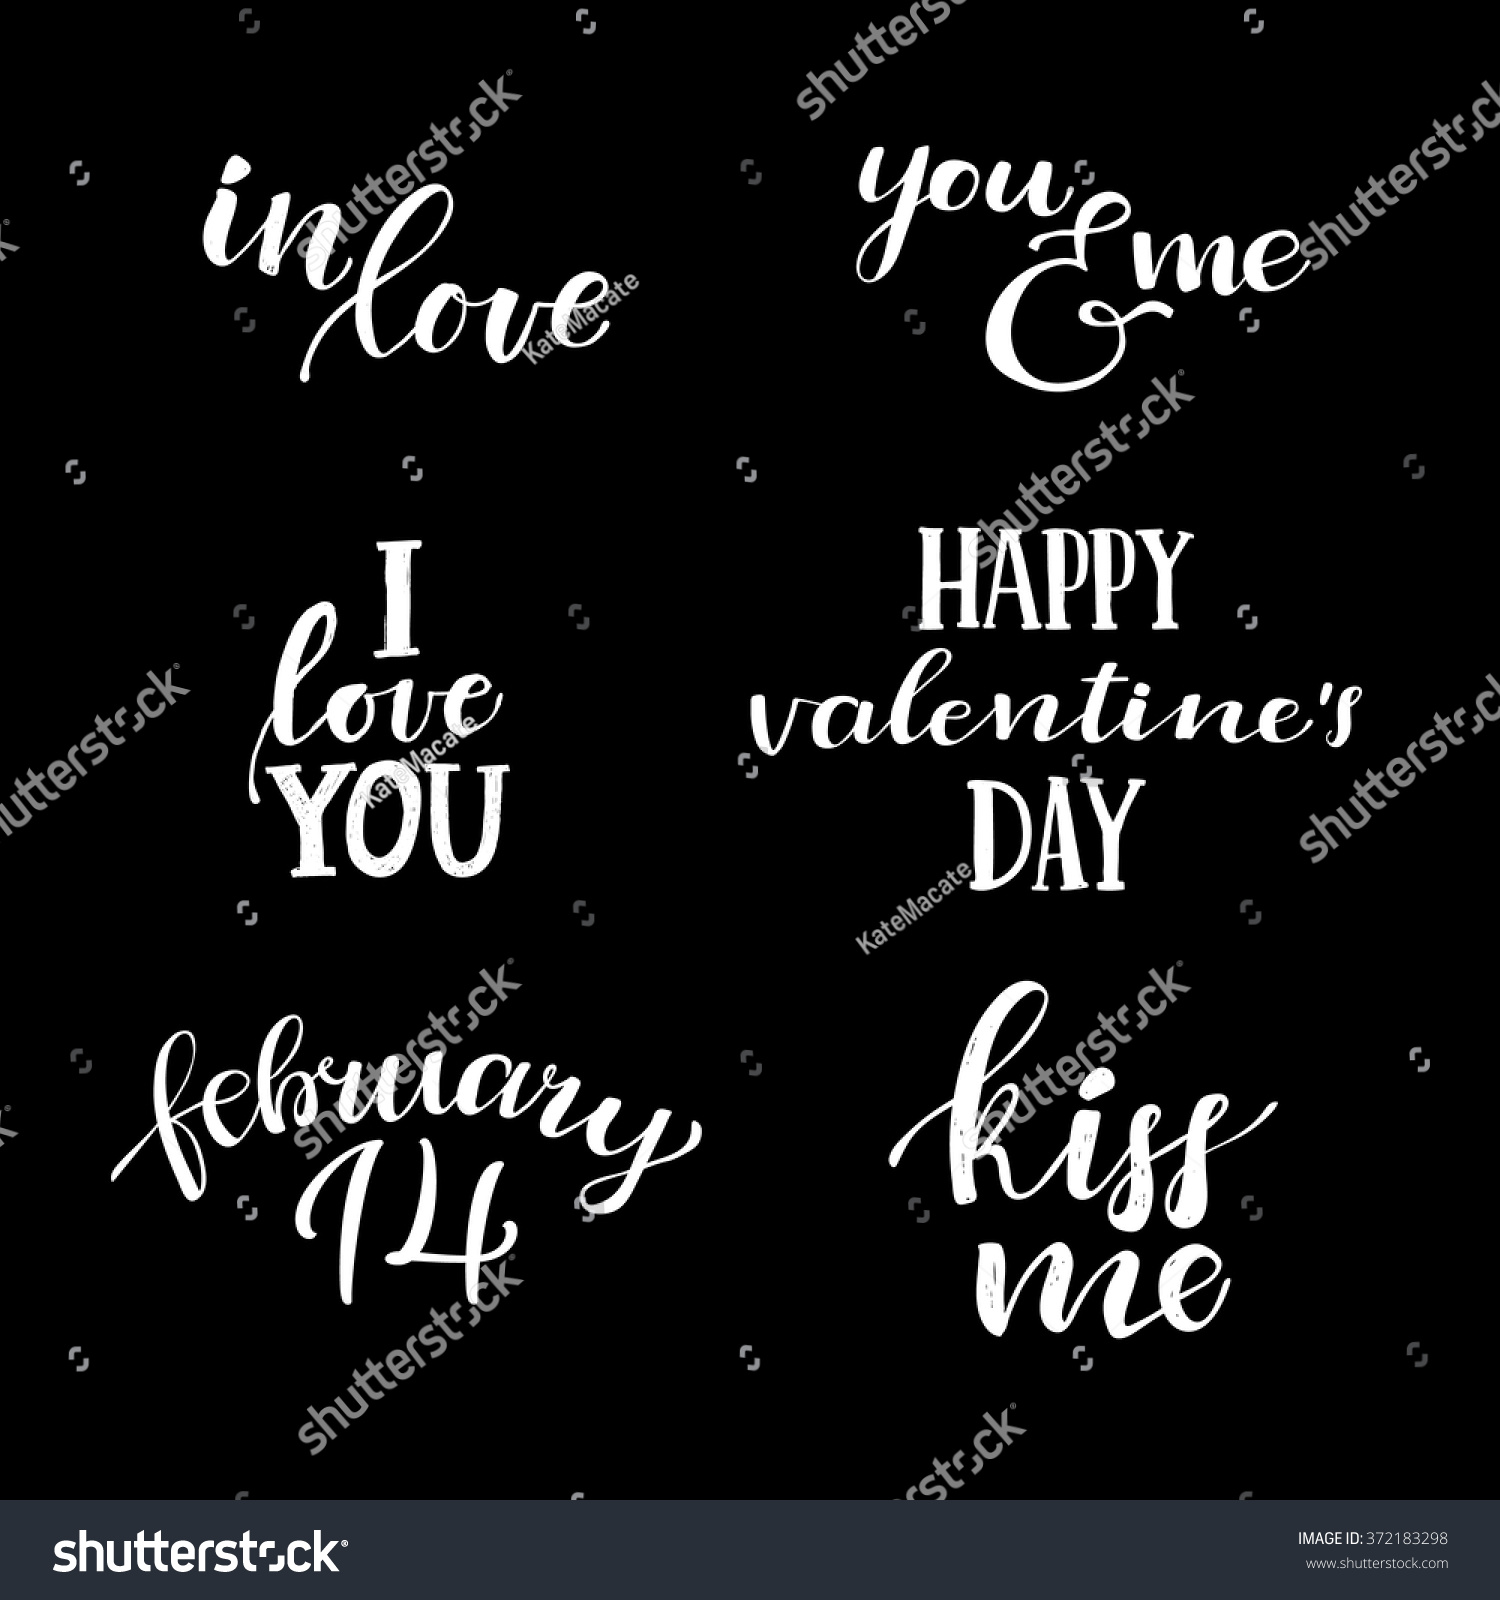 Love you hand lettering vintage quotes stock vector